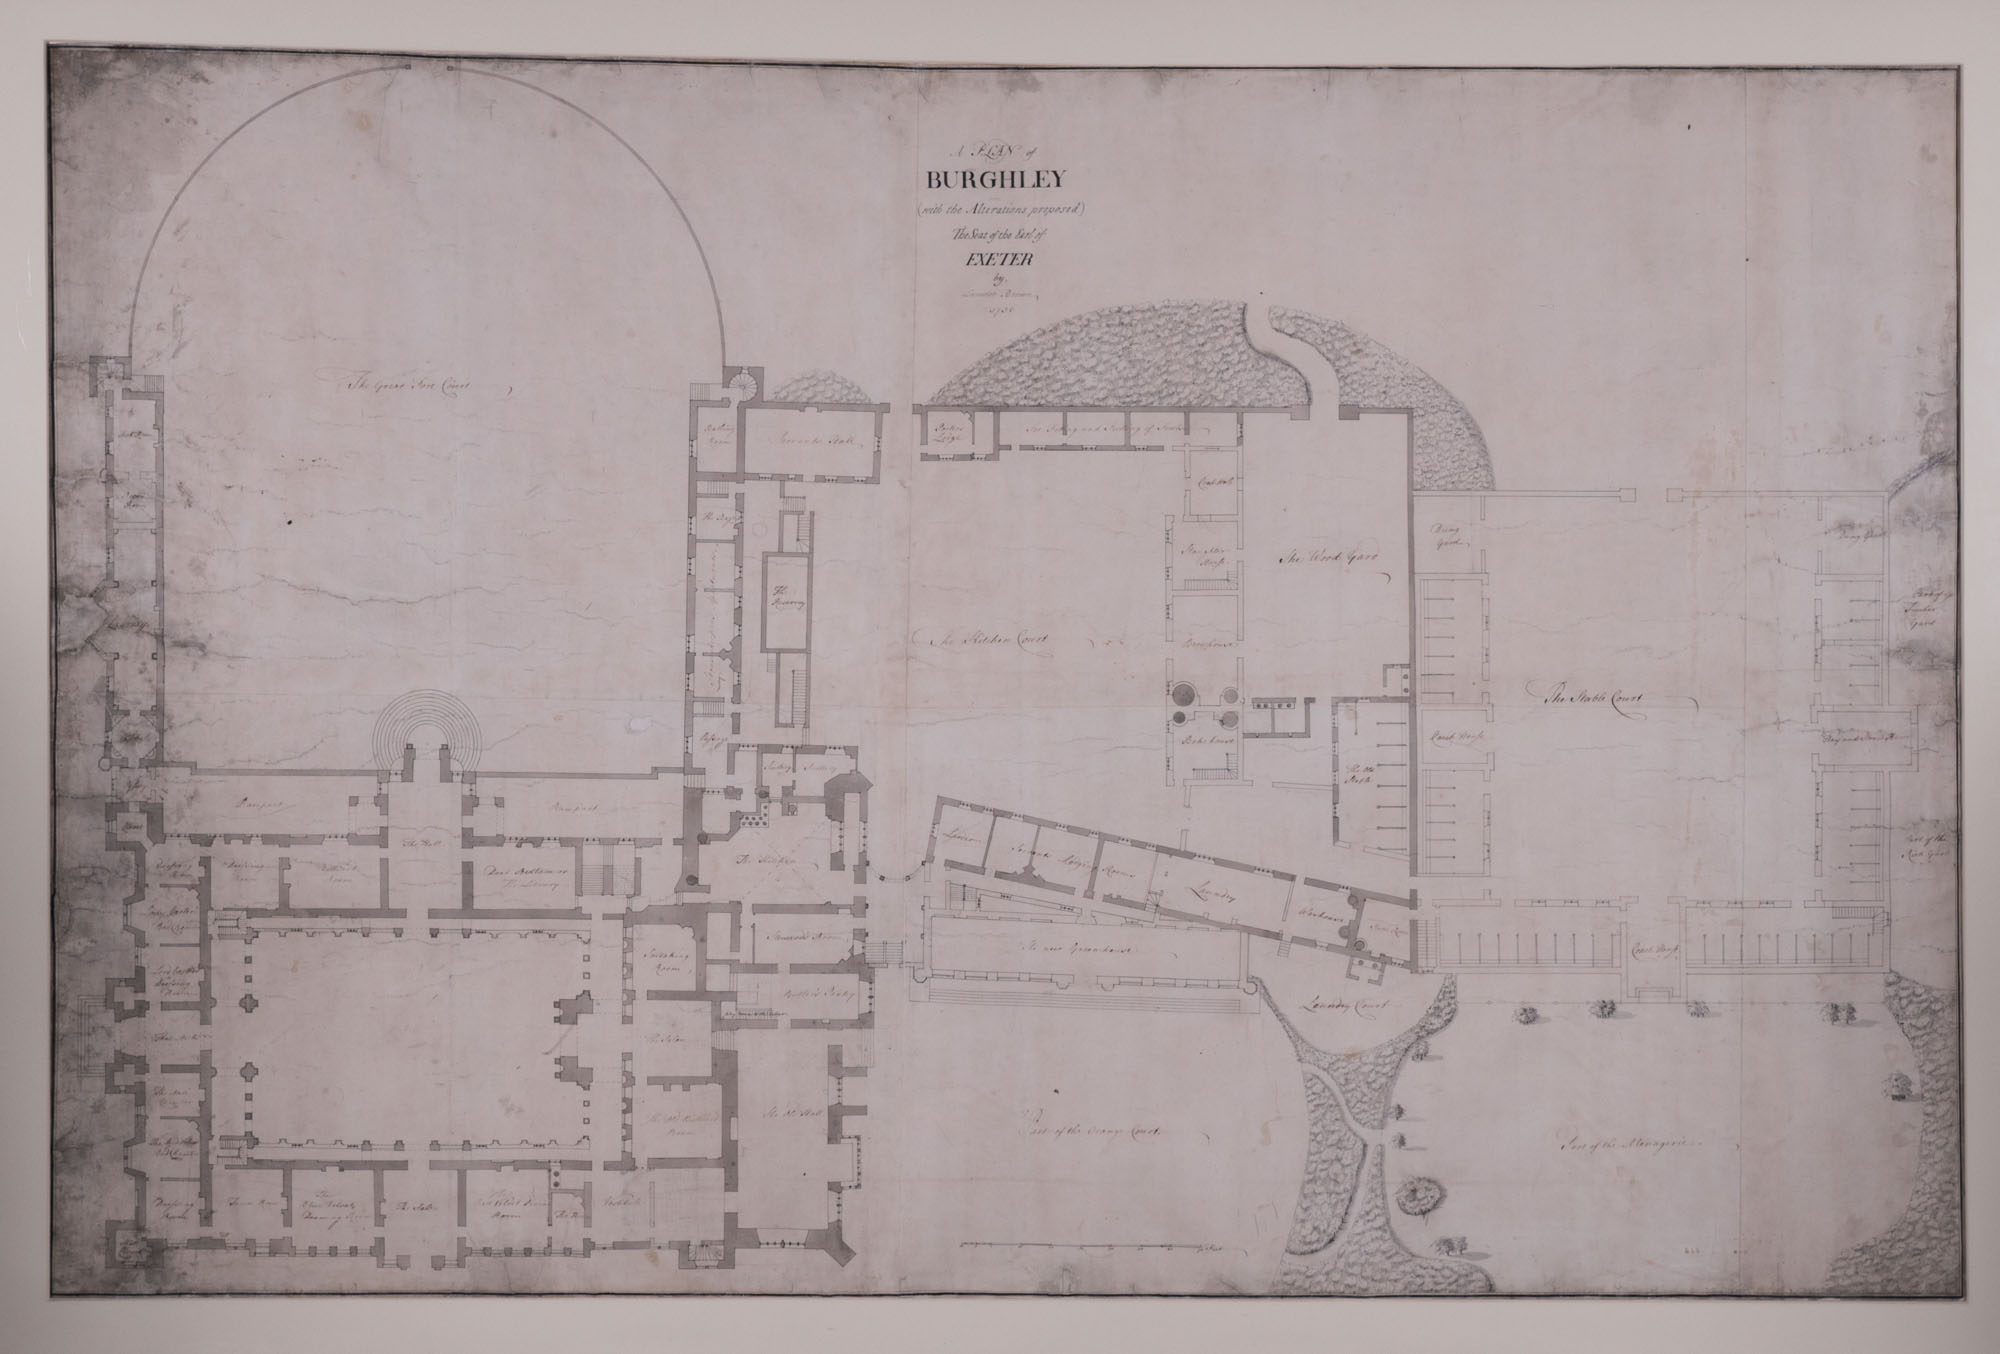 A plan of Burghley with  Proposed Alterations, by William Daniel Legg (d. 1806).